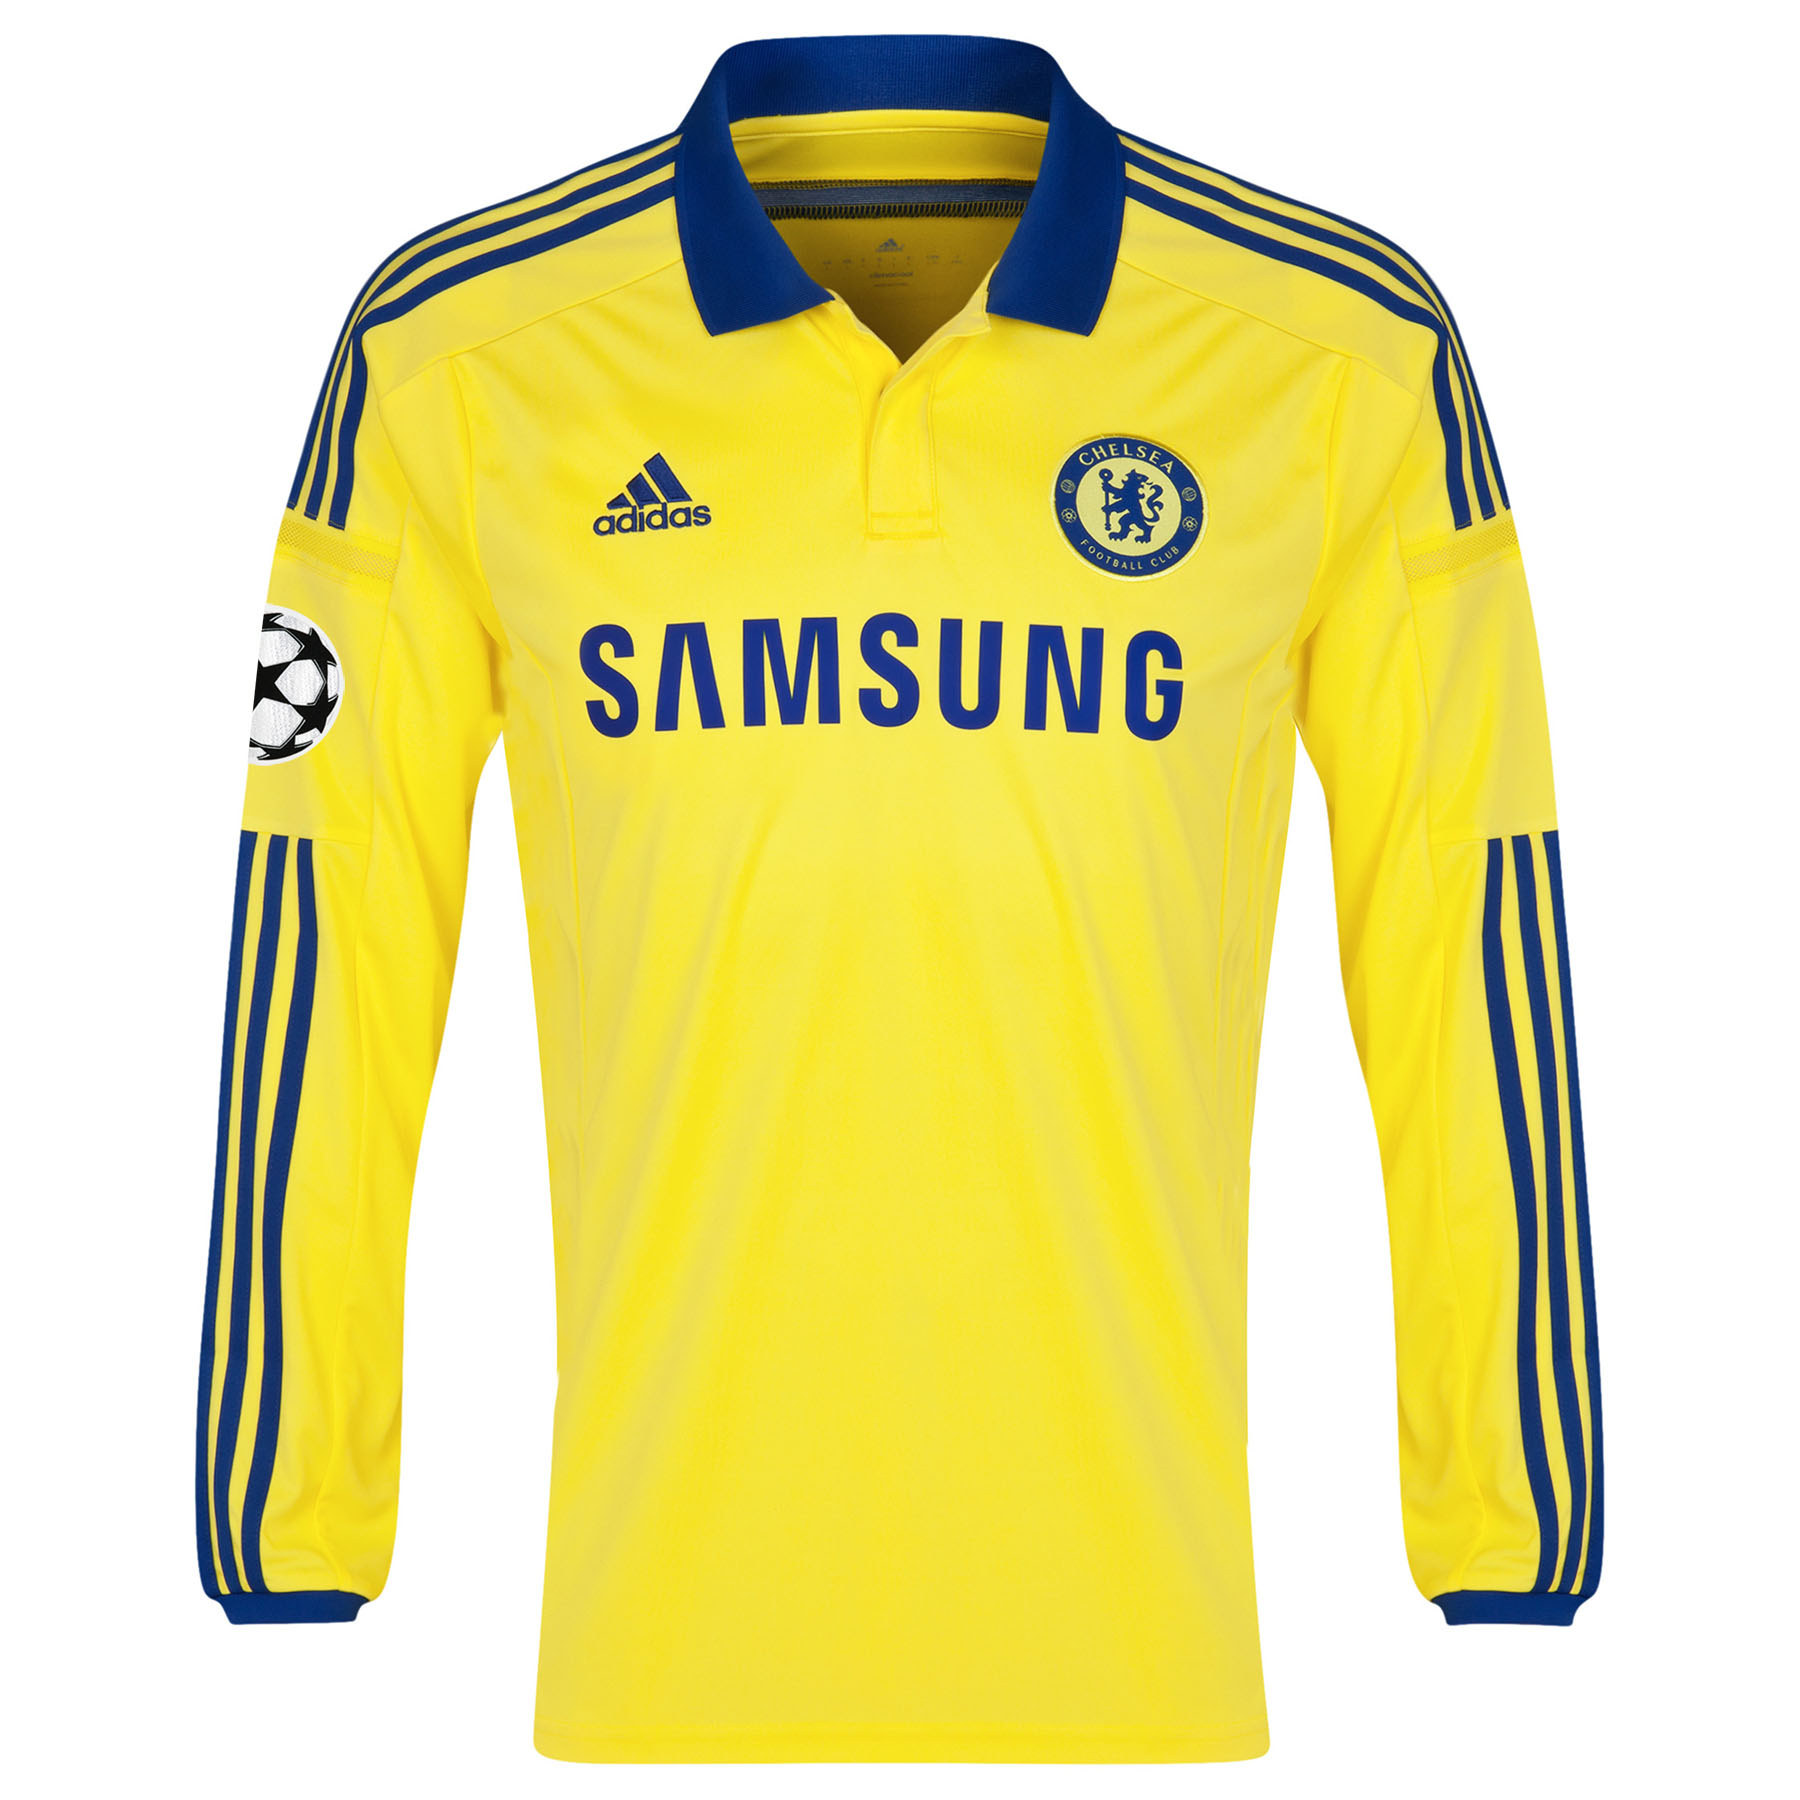 Chelsea UEFA Champions League Away Shirt 2014/15 - Long Sleeve